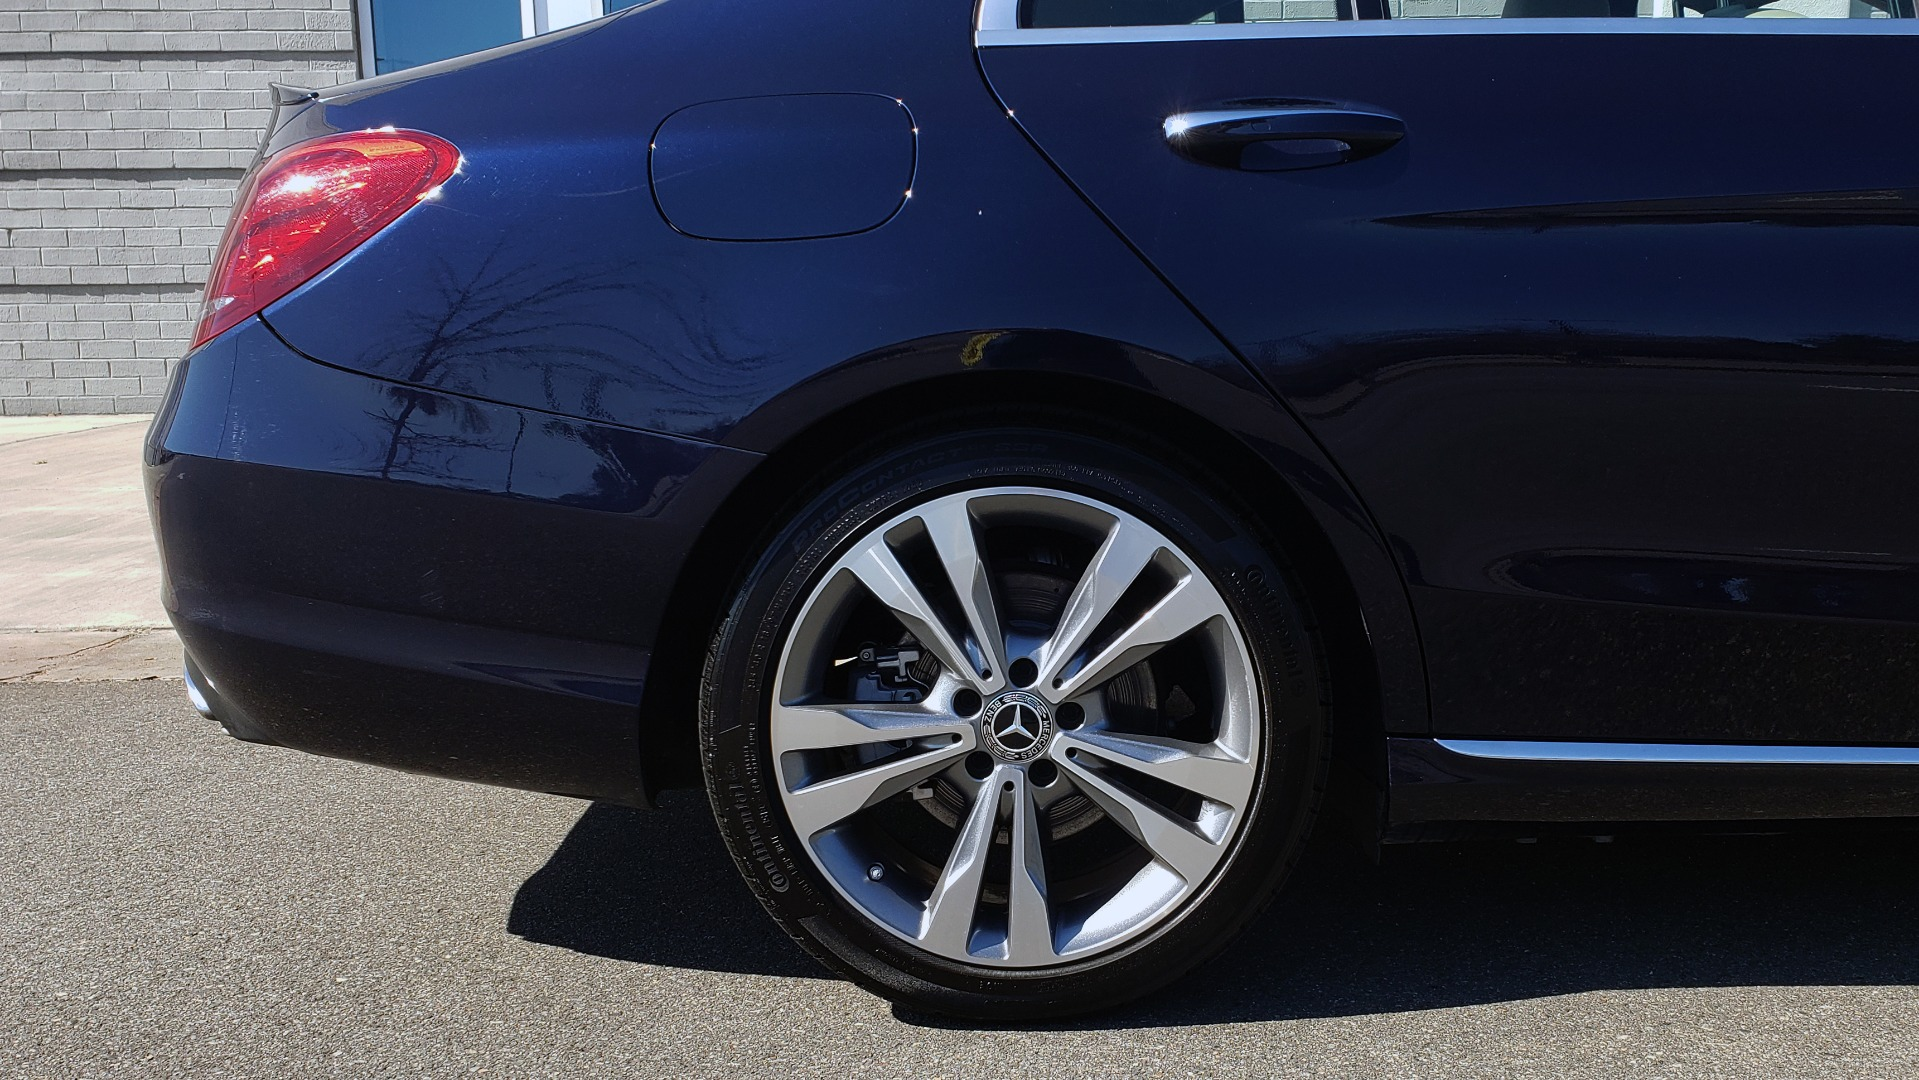 Used 2018 Mercedes-Benz C-CLASS C 300 PREMIUM / SUNROOF / BURMESTER / BSM / REARVIEW for sale $23,995 at Formula Imports in Charlotte NC 28227 72